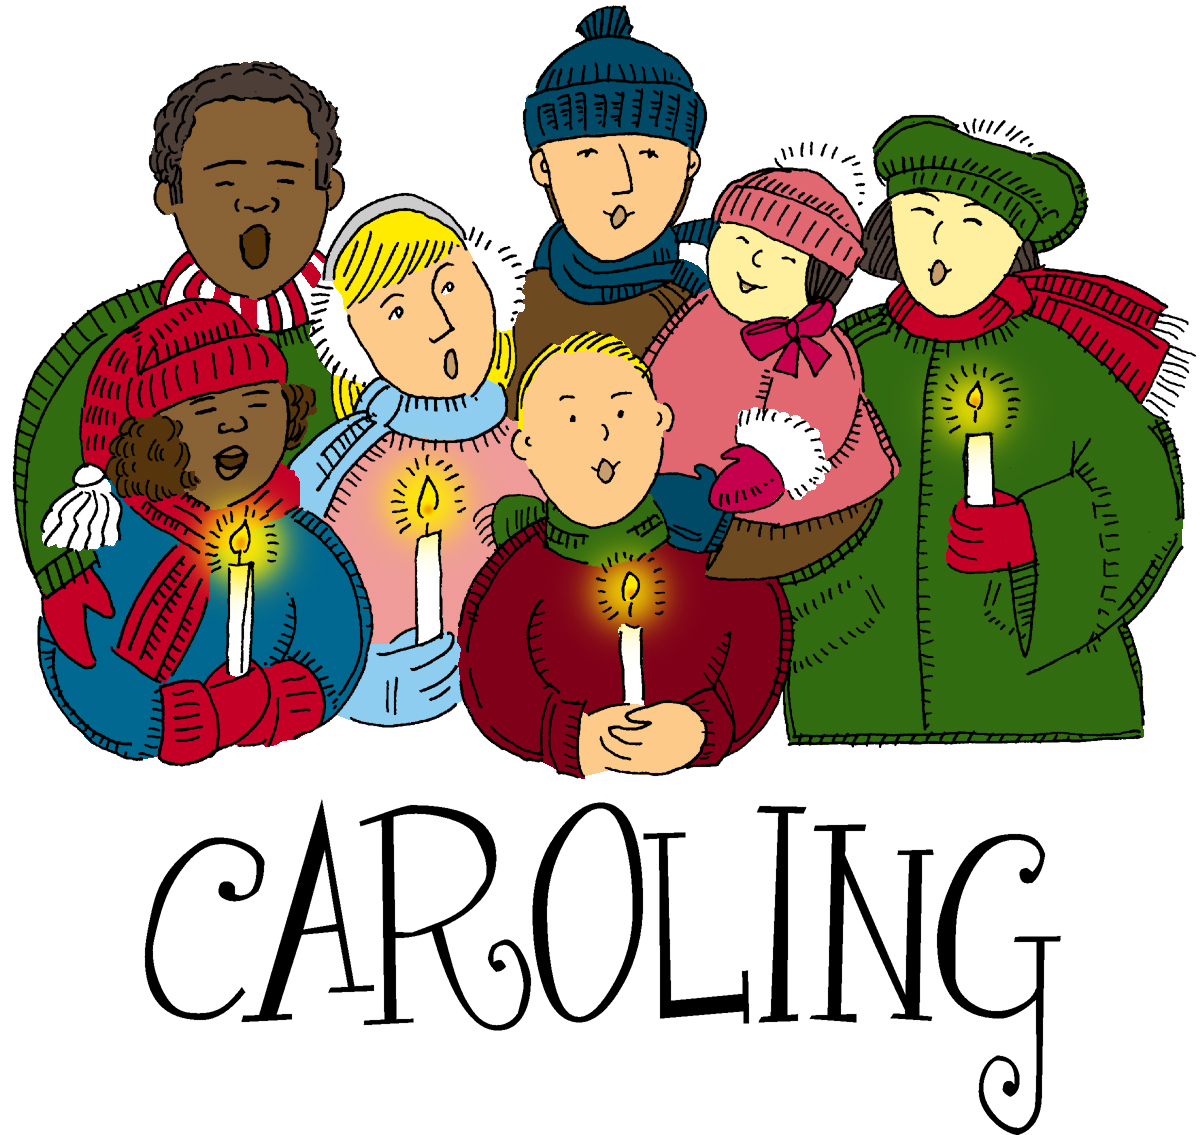 Caroling cookies amp cider mosinee united methodist church